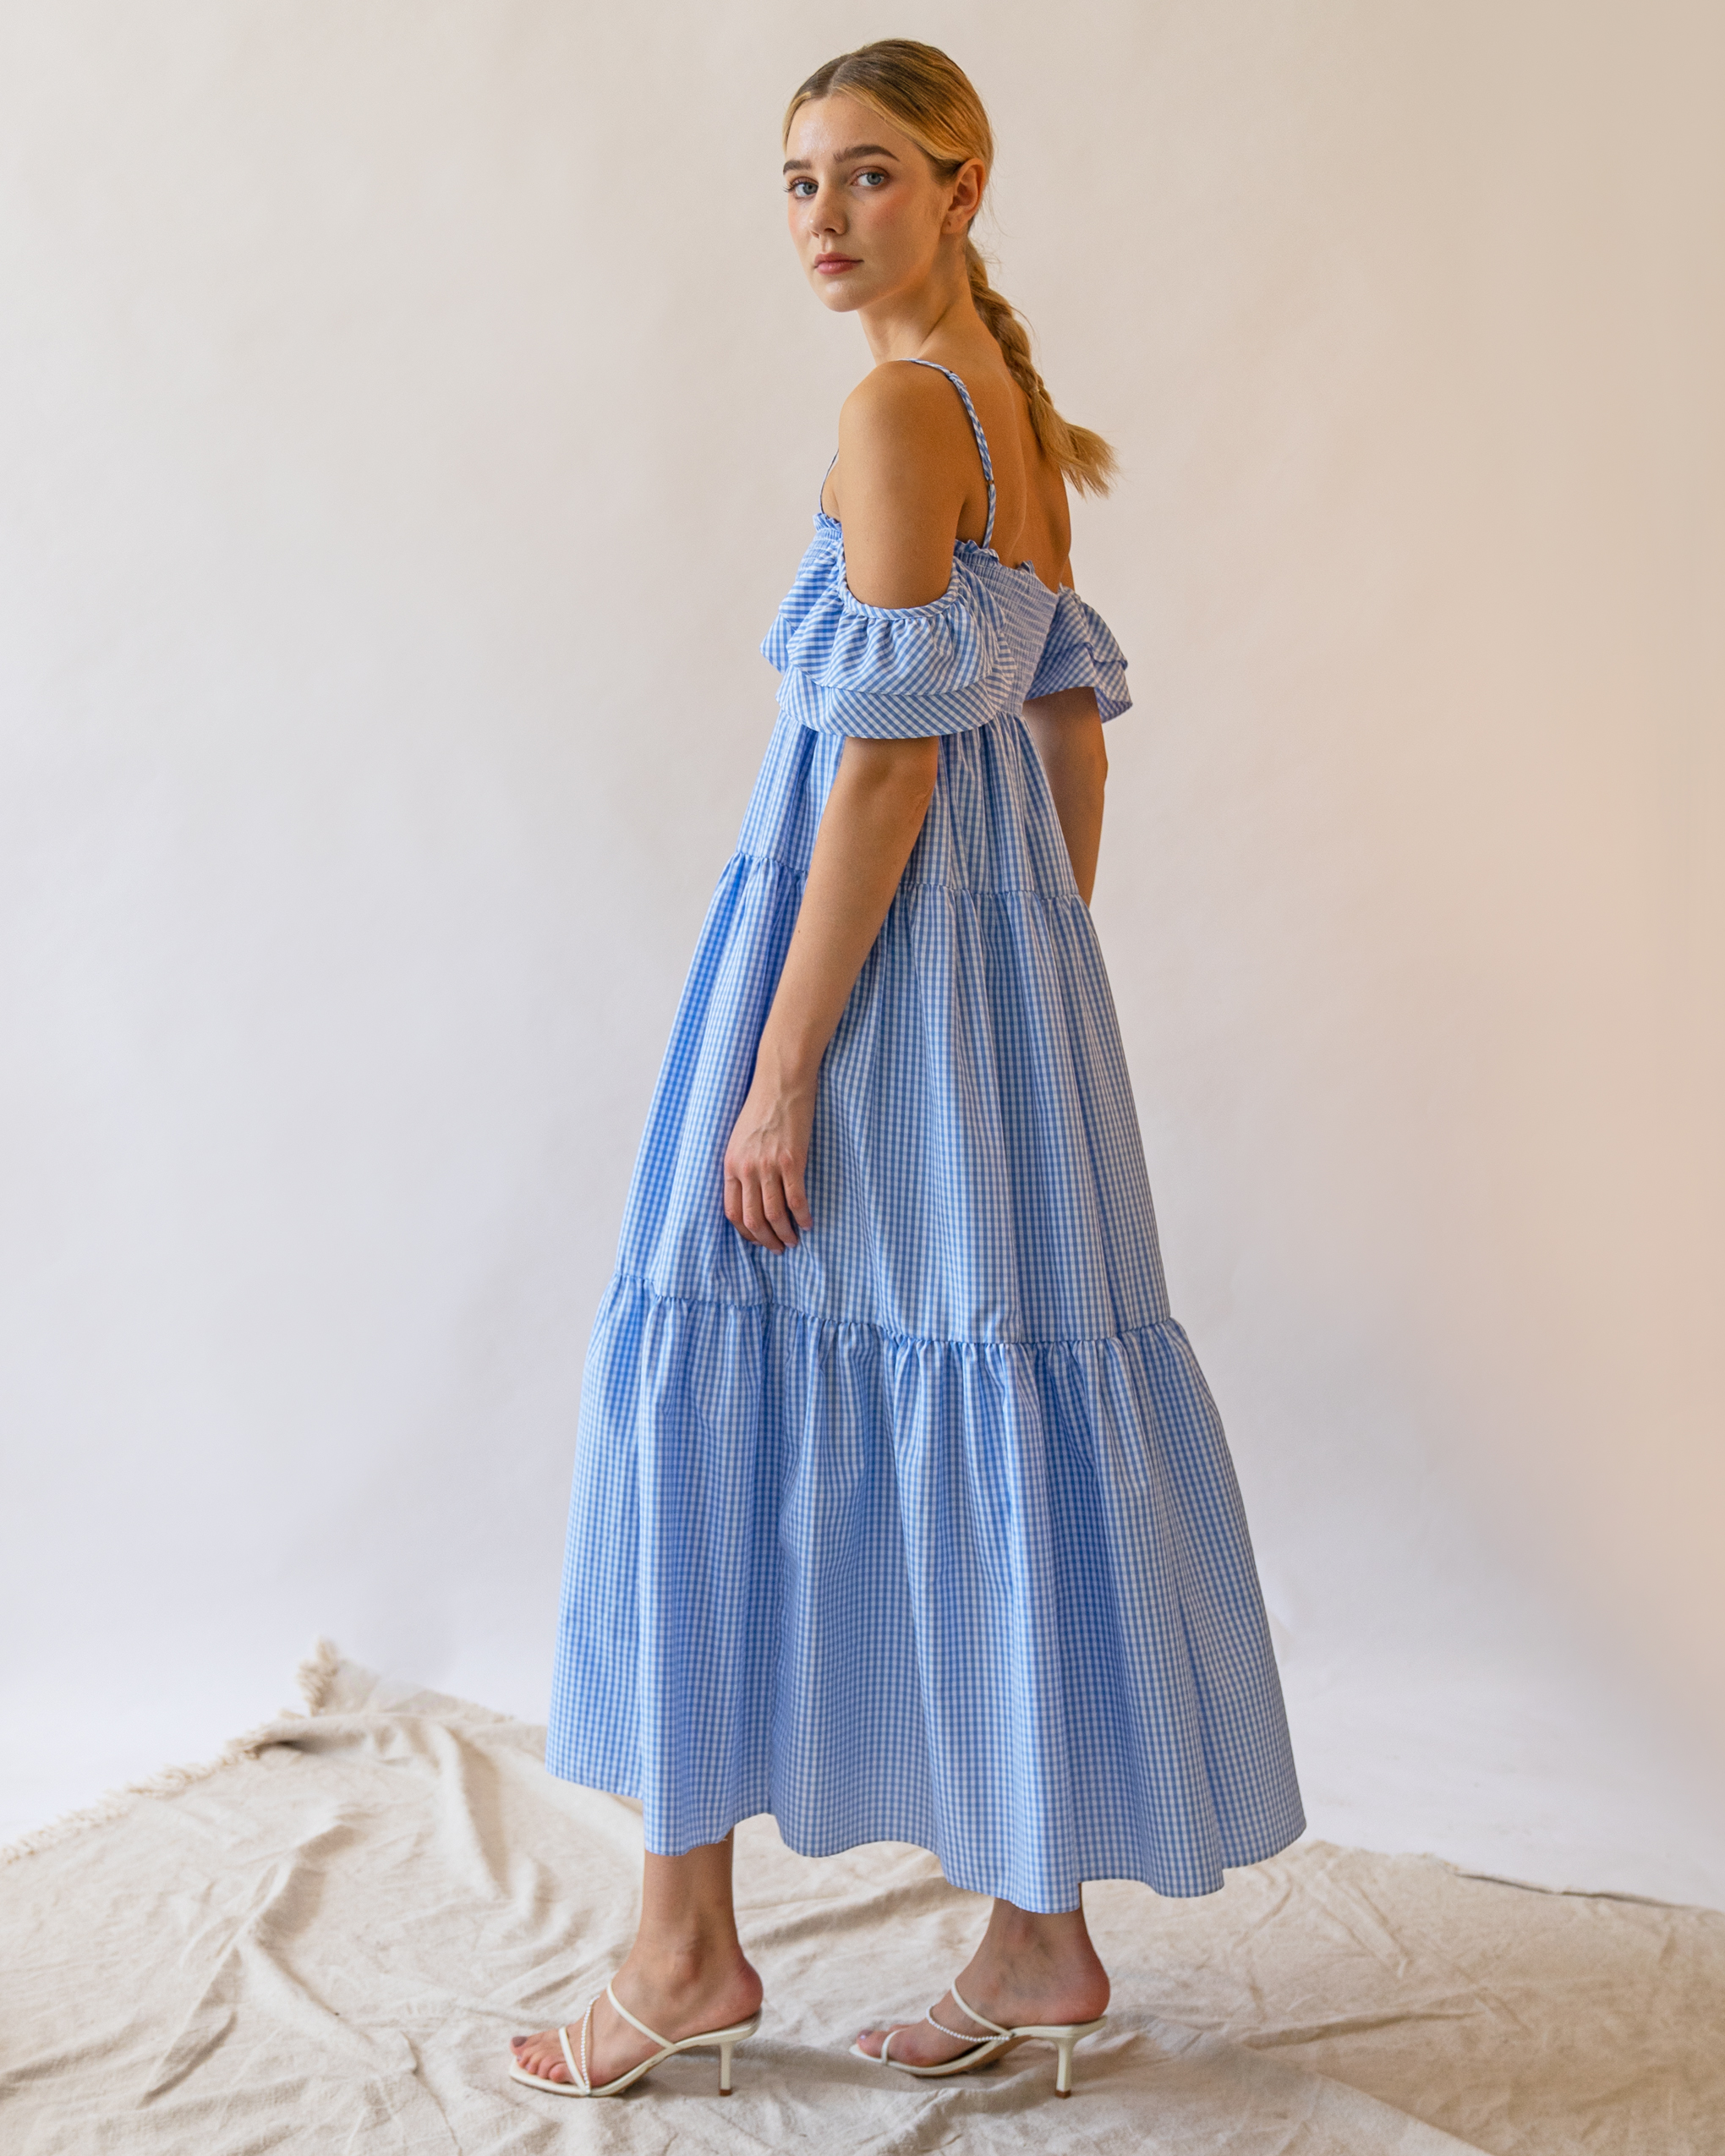 A woman is wearing a blue check ruffle off-the-shoulder dress.